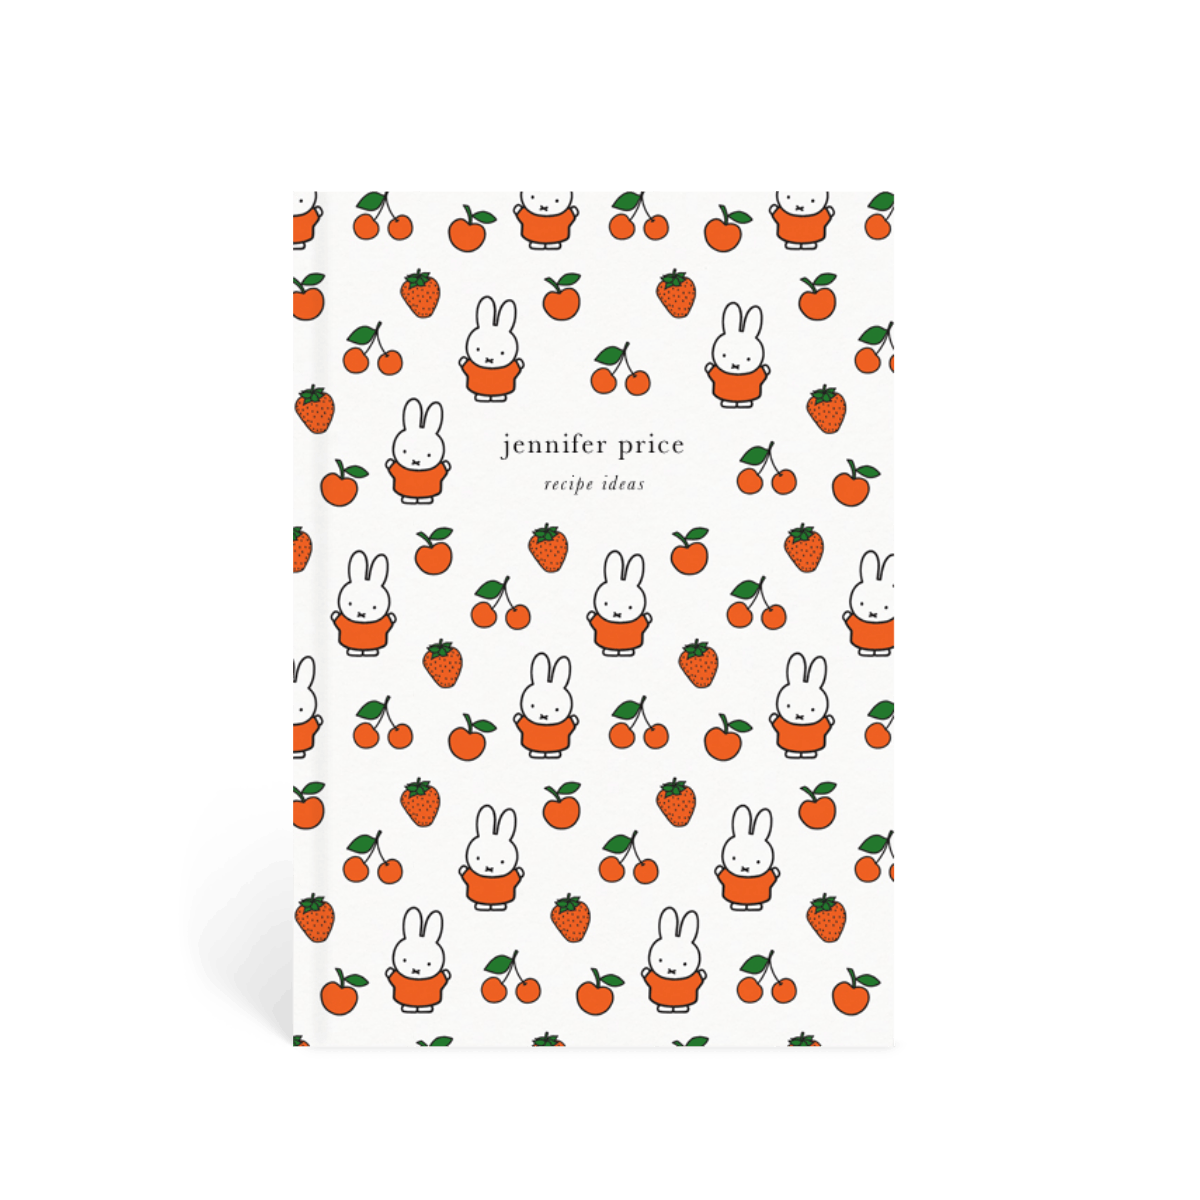 Https%3a%2f%2fwww.papier.com%2fproduct image%2f95592%2f25%2fstrawberry miffy 23970 front 1572966872.png?ixlib=rb 1.1